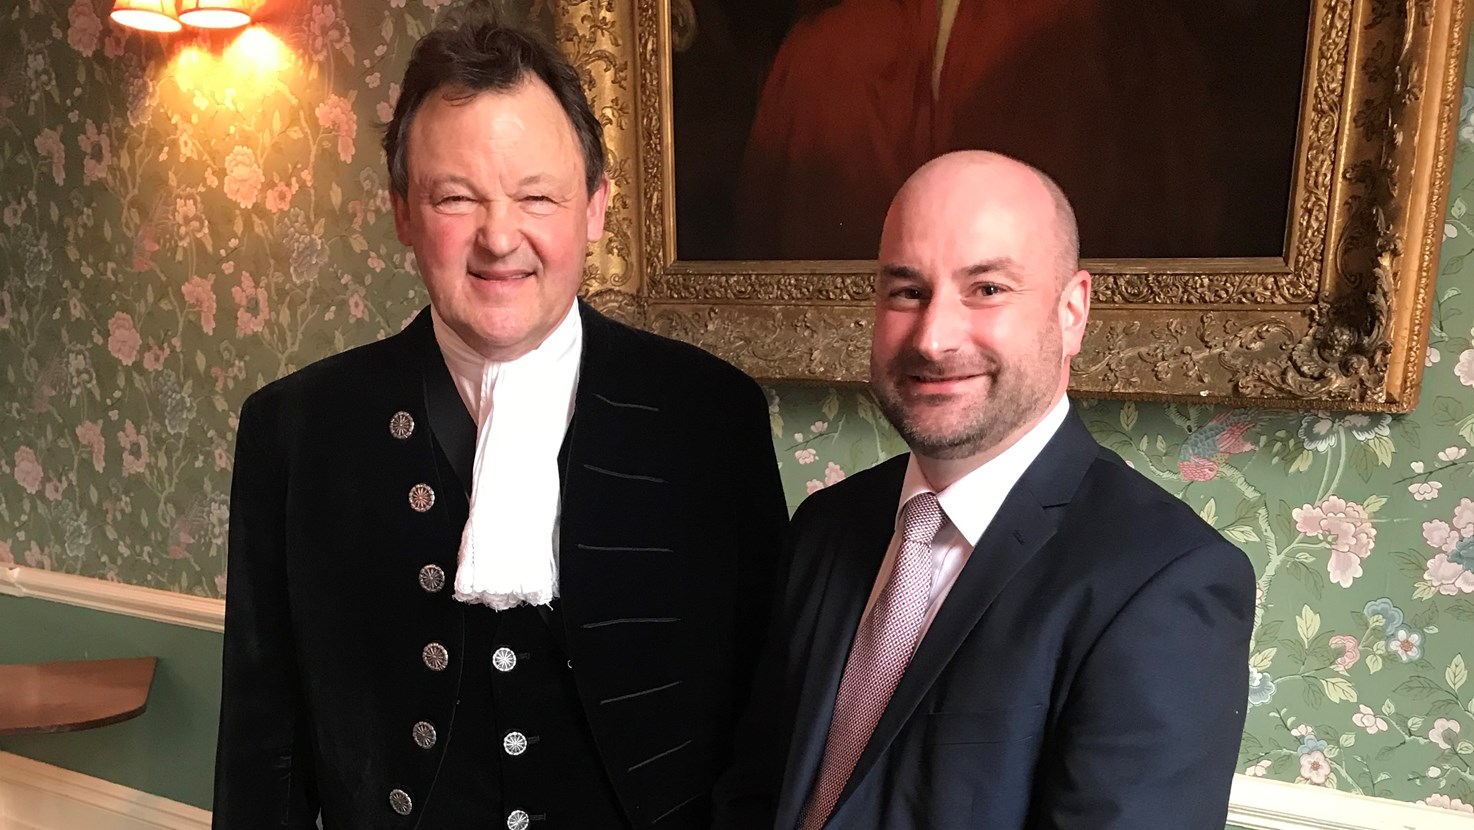 PCC Marc Jones pictured with the High Sheriff